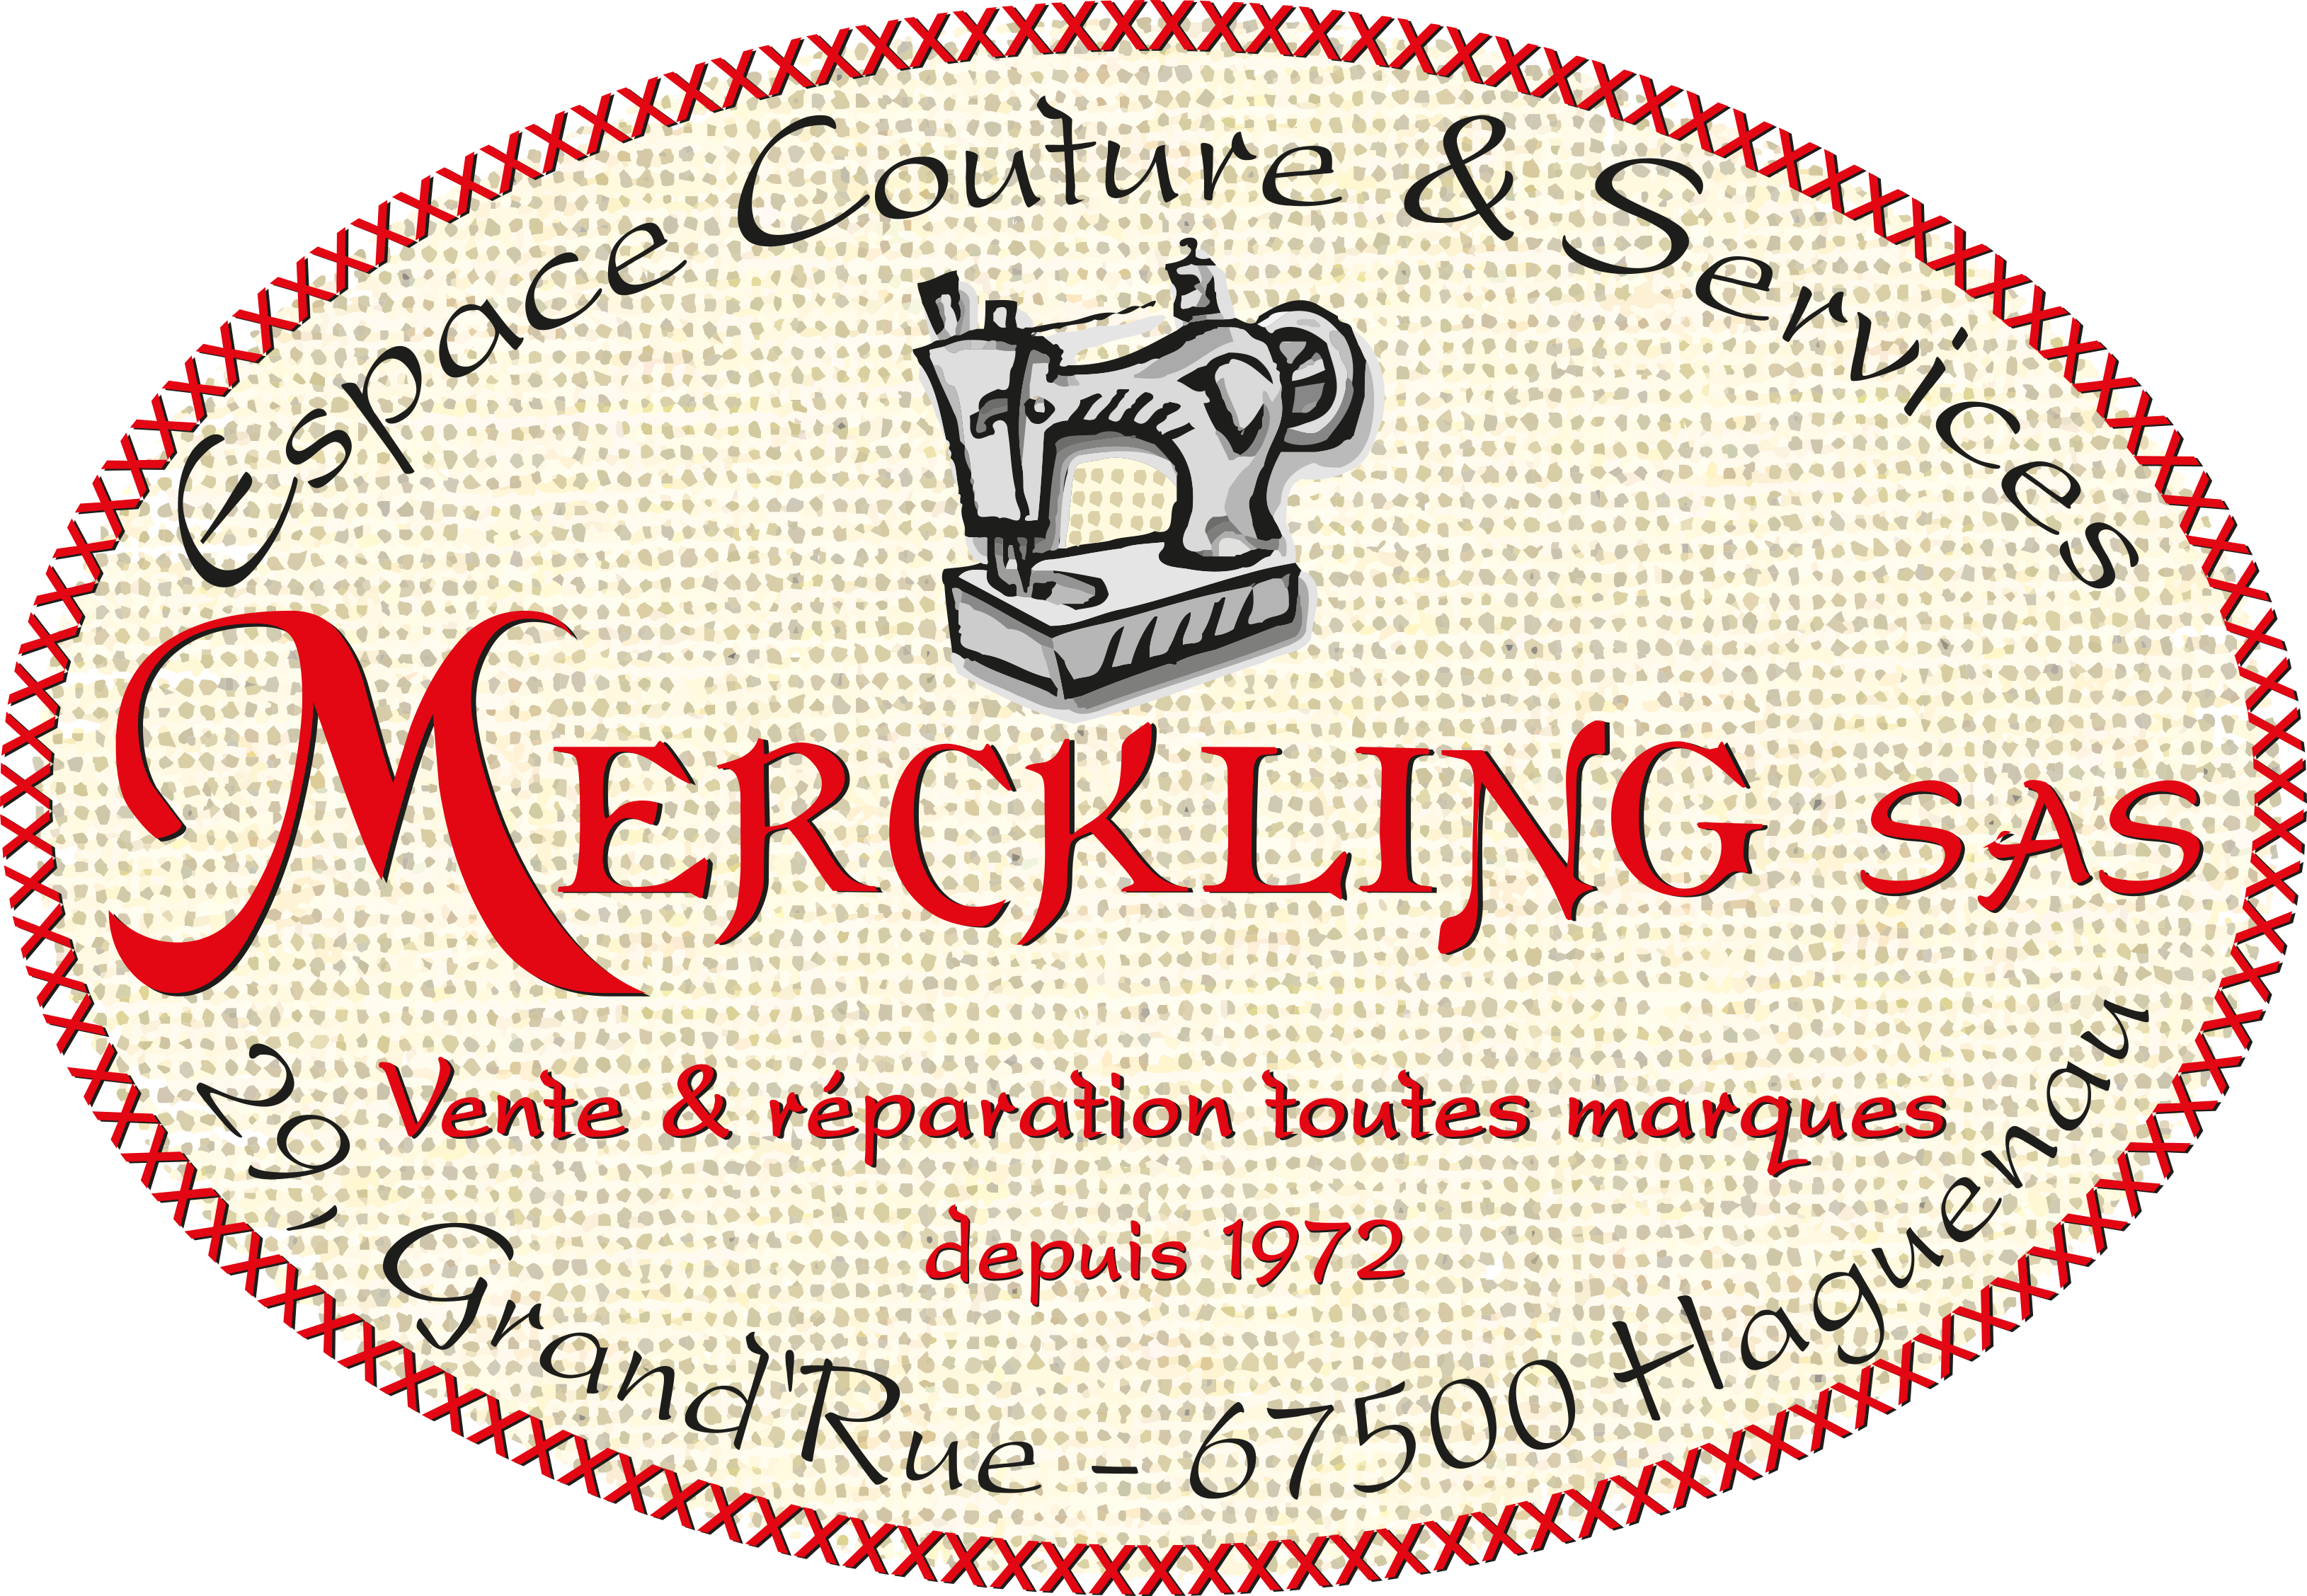 Merckling espace couture